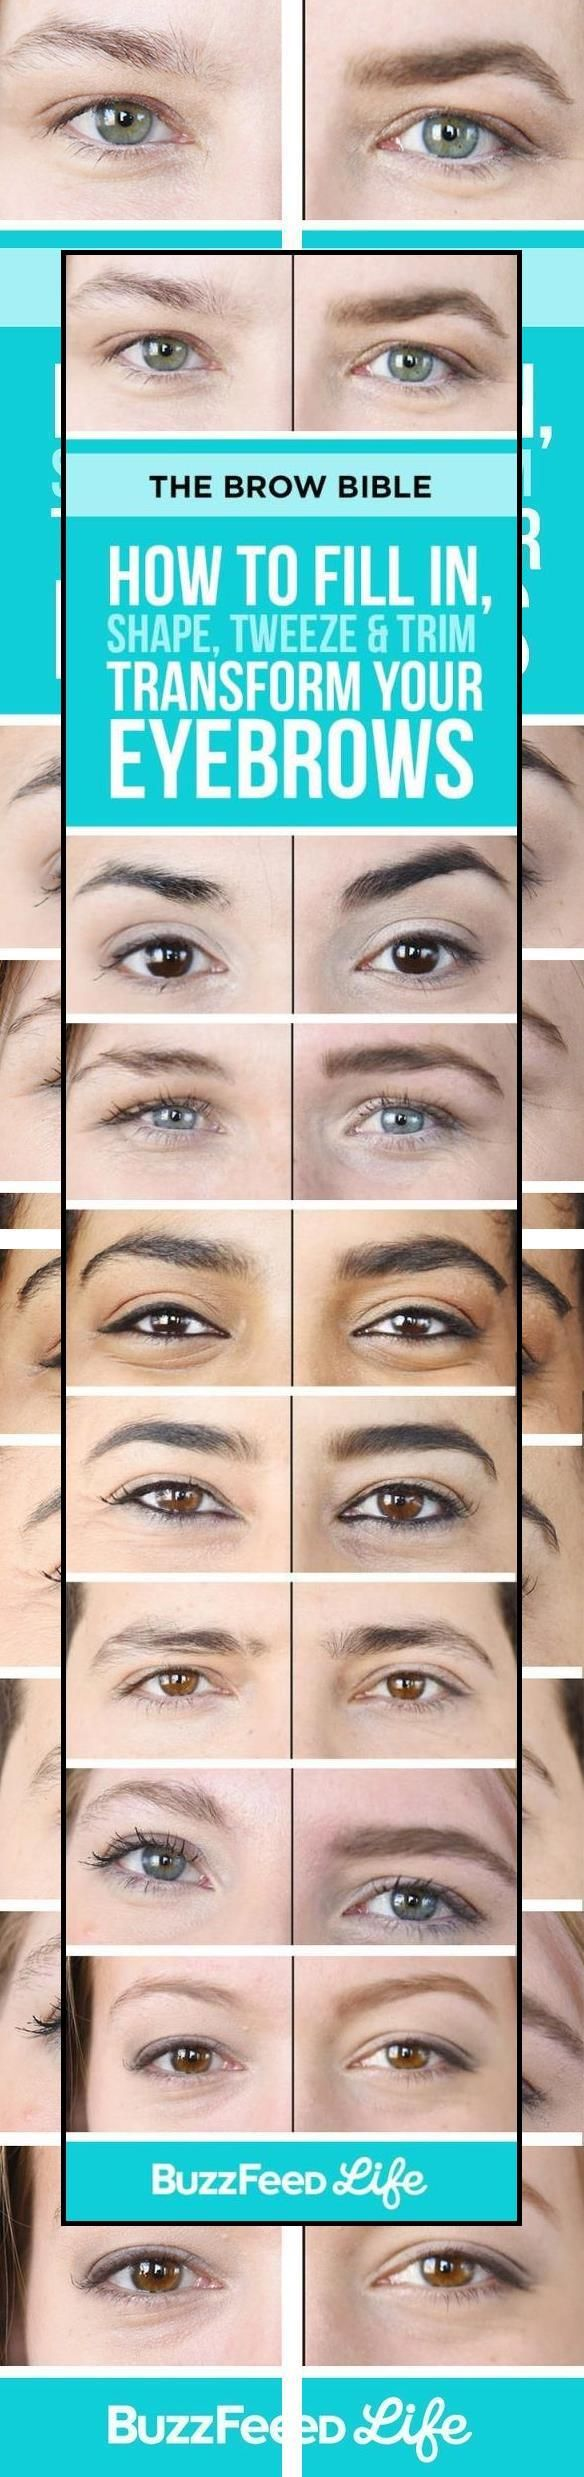 Where To Get Your Eyebrows Threaded | Salon For Eyebrows ...